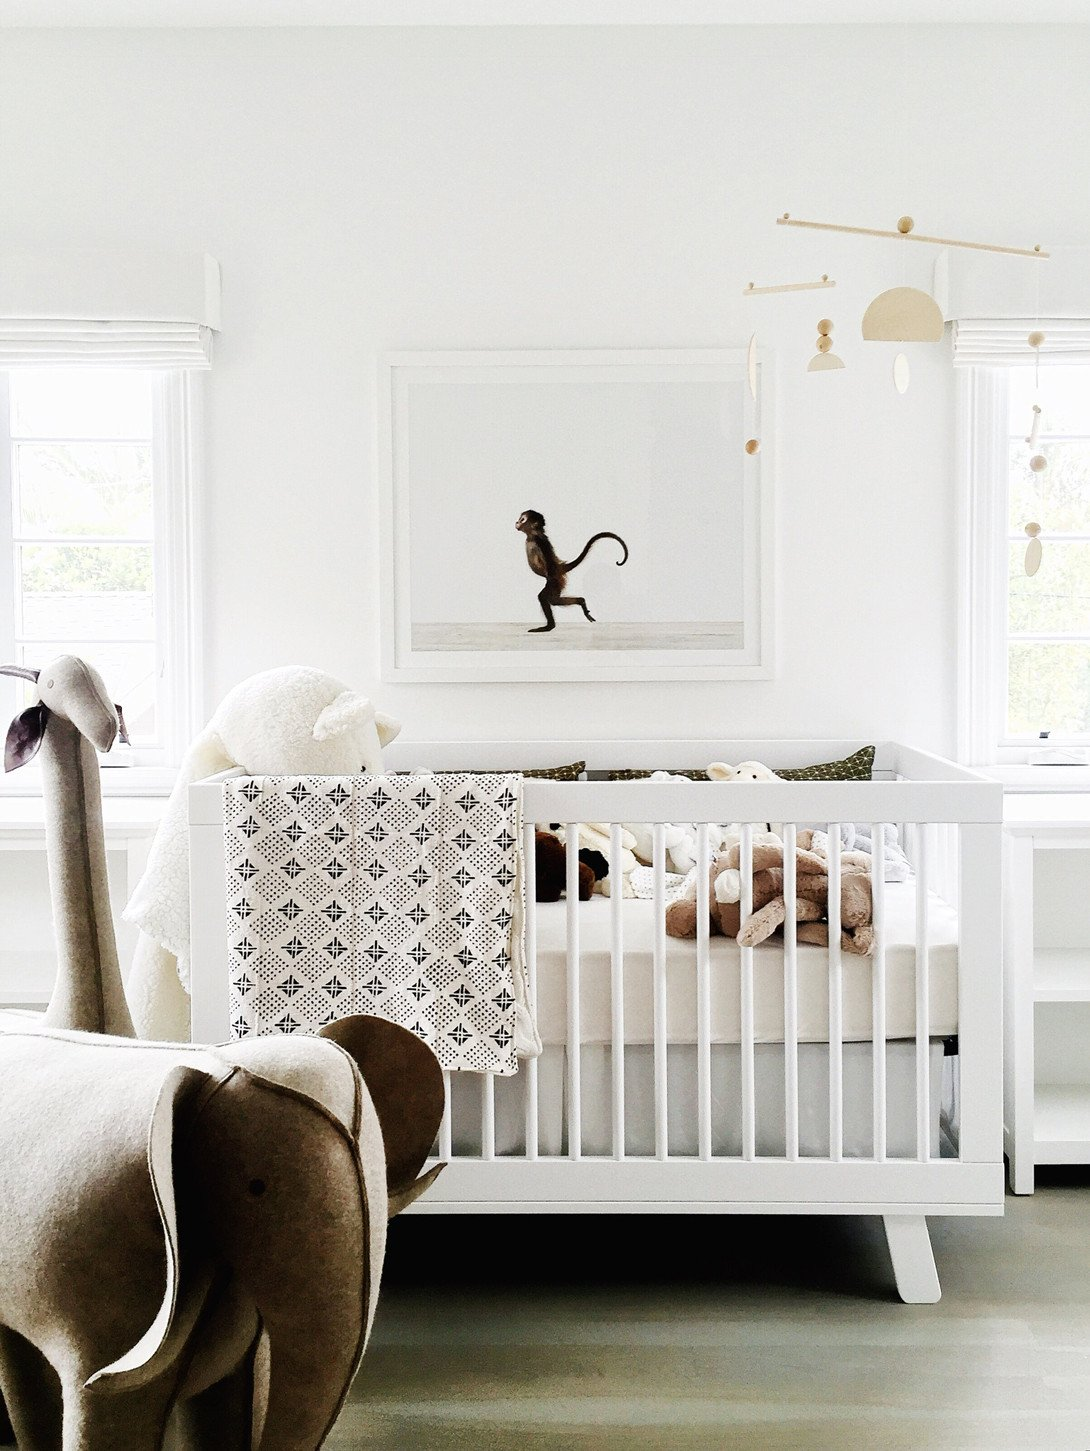 White nursery with modern farmhouse California organic chic design by Erin Fetherston. A modern white crib mingles with a charming and whimsical large framed photographic print of a monkey. #nursery #allwhite #kidsrooms